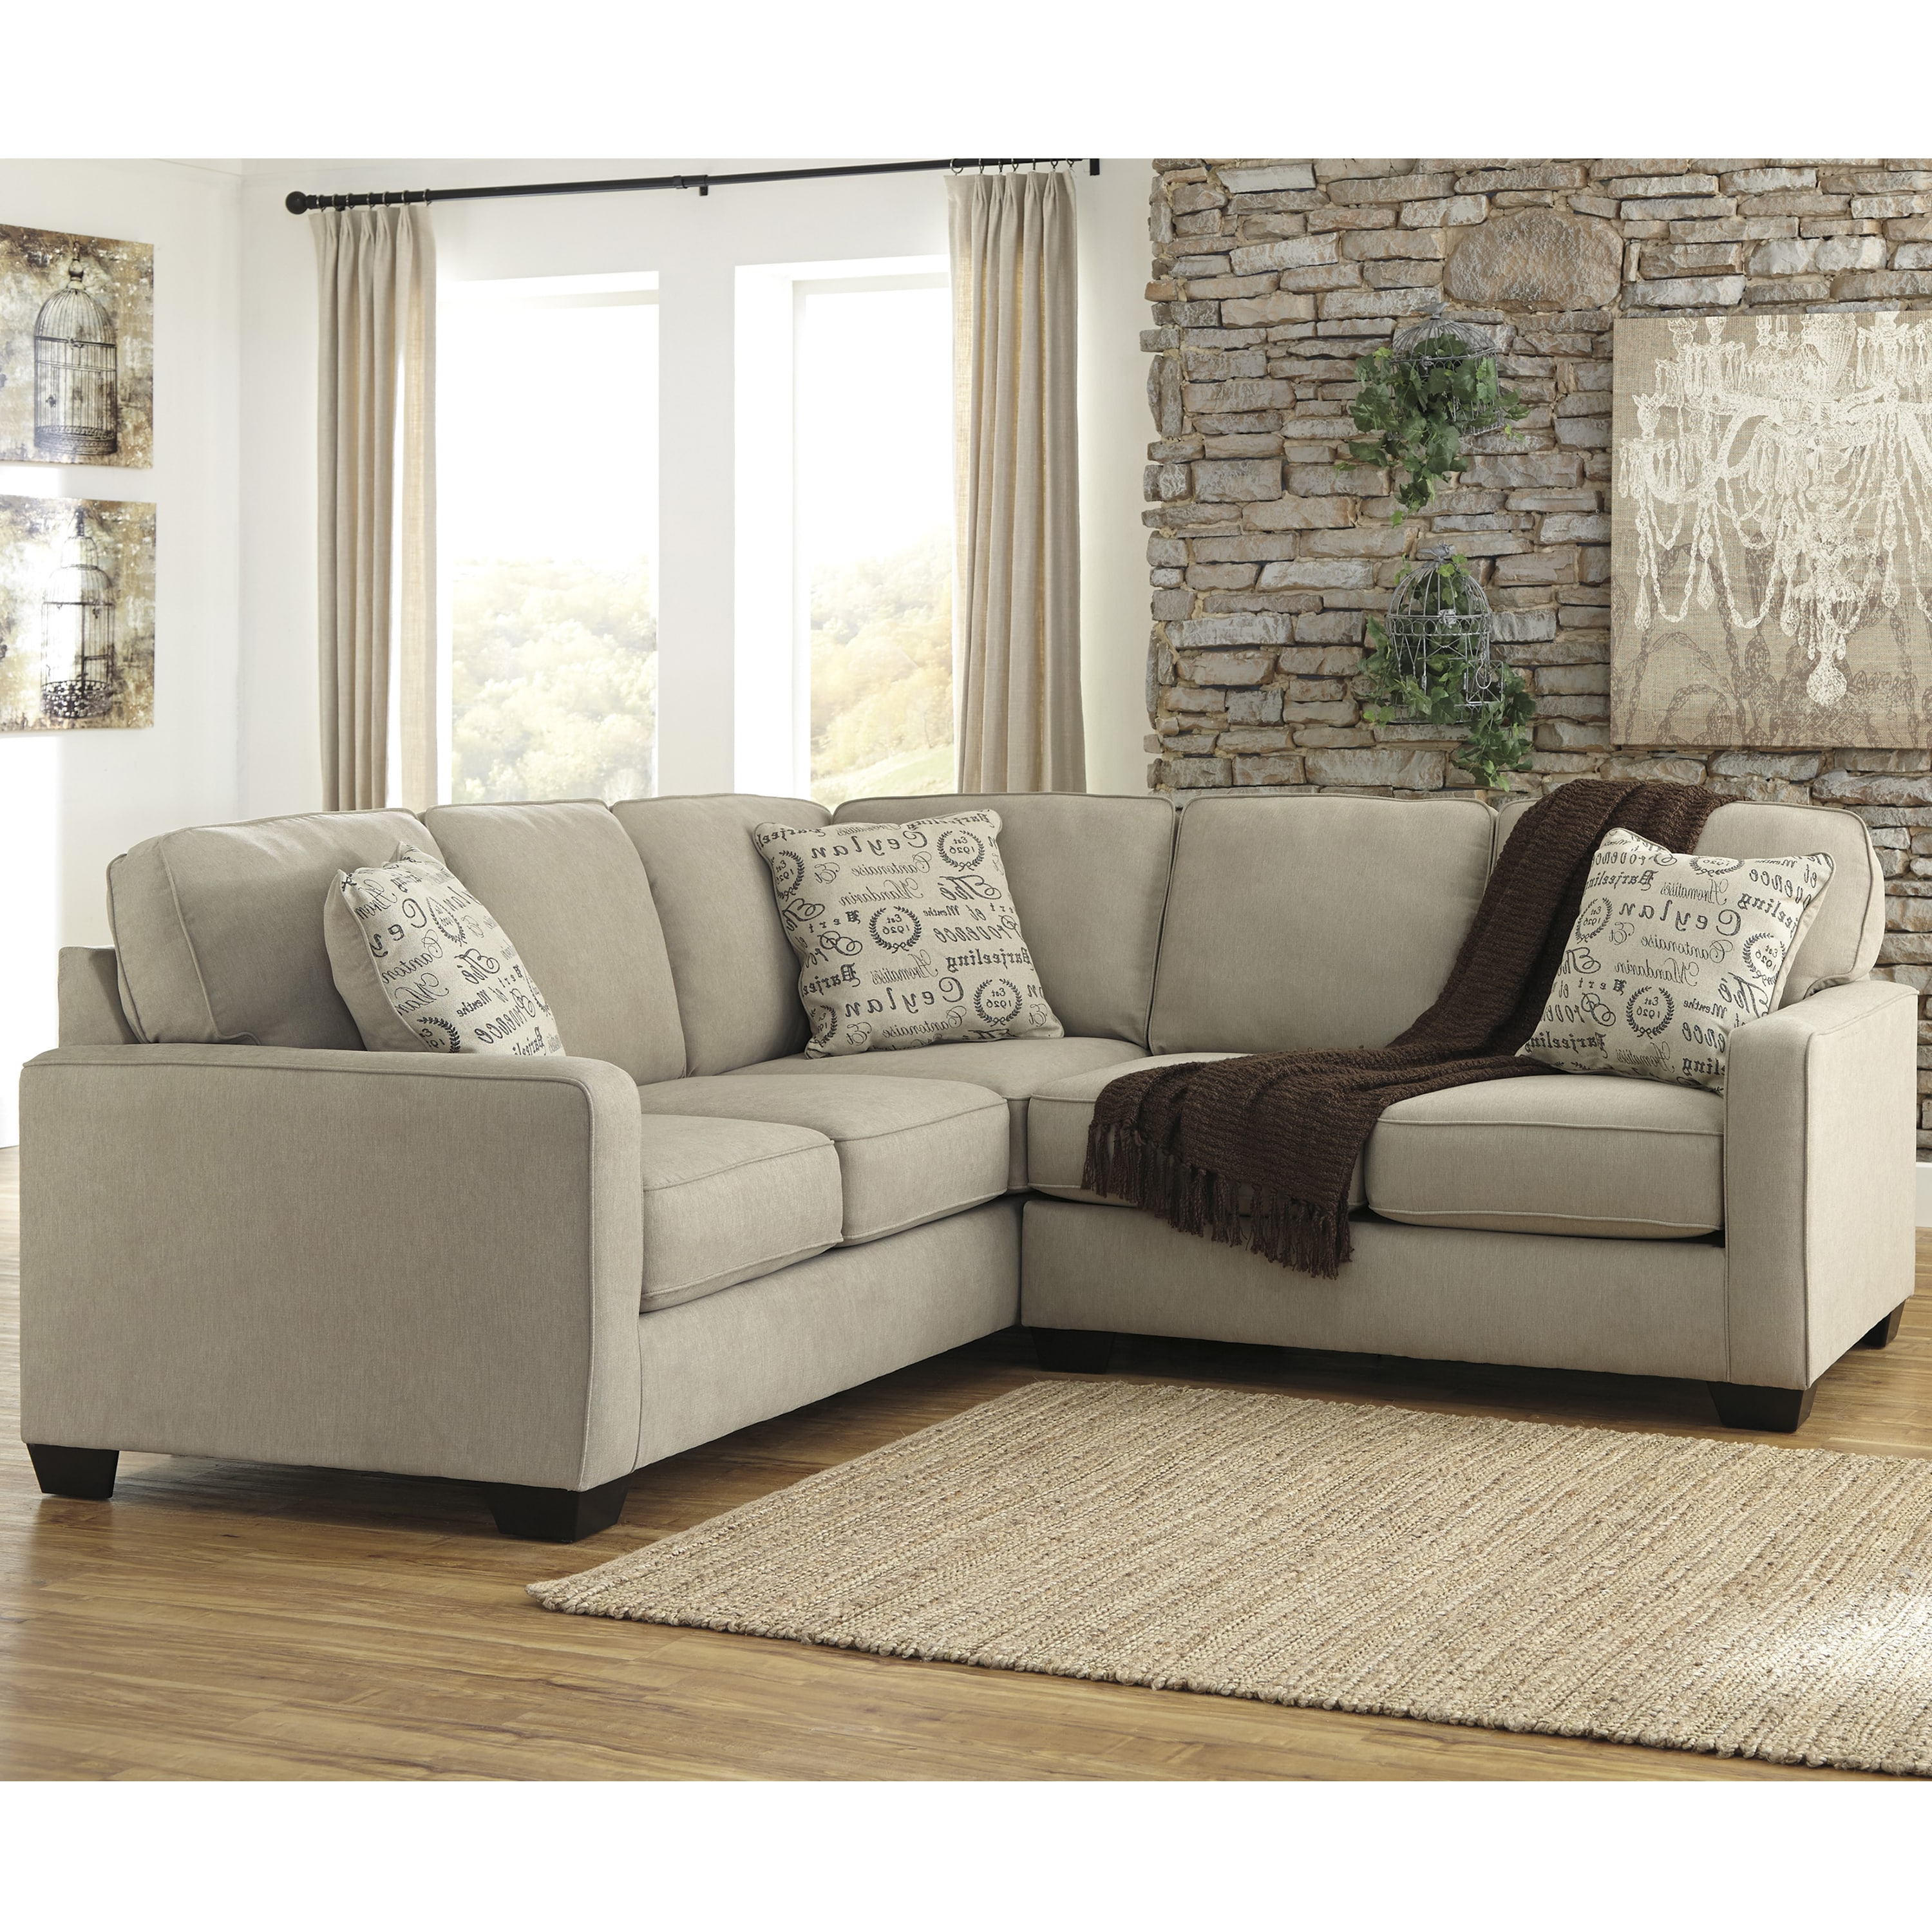 Elm Grande Ii 2 Piece Sectionals For Fashionable Patola Park Patina Large Sectional W/ Chaise (View 9 of 20)